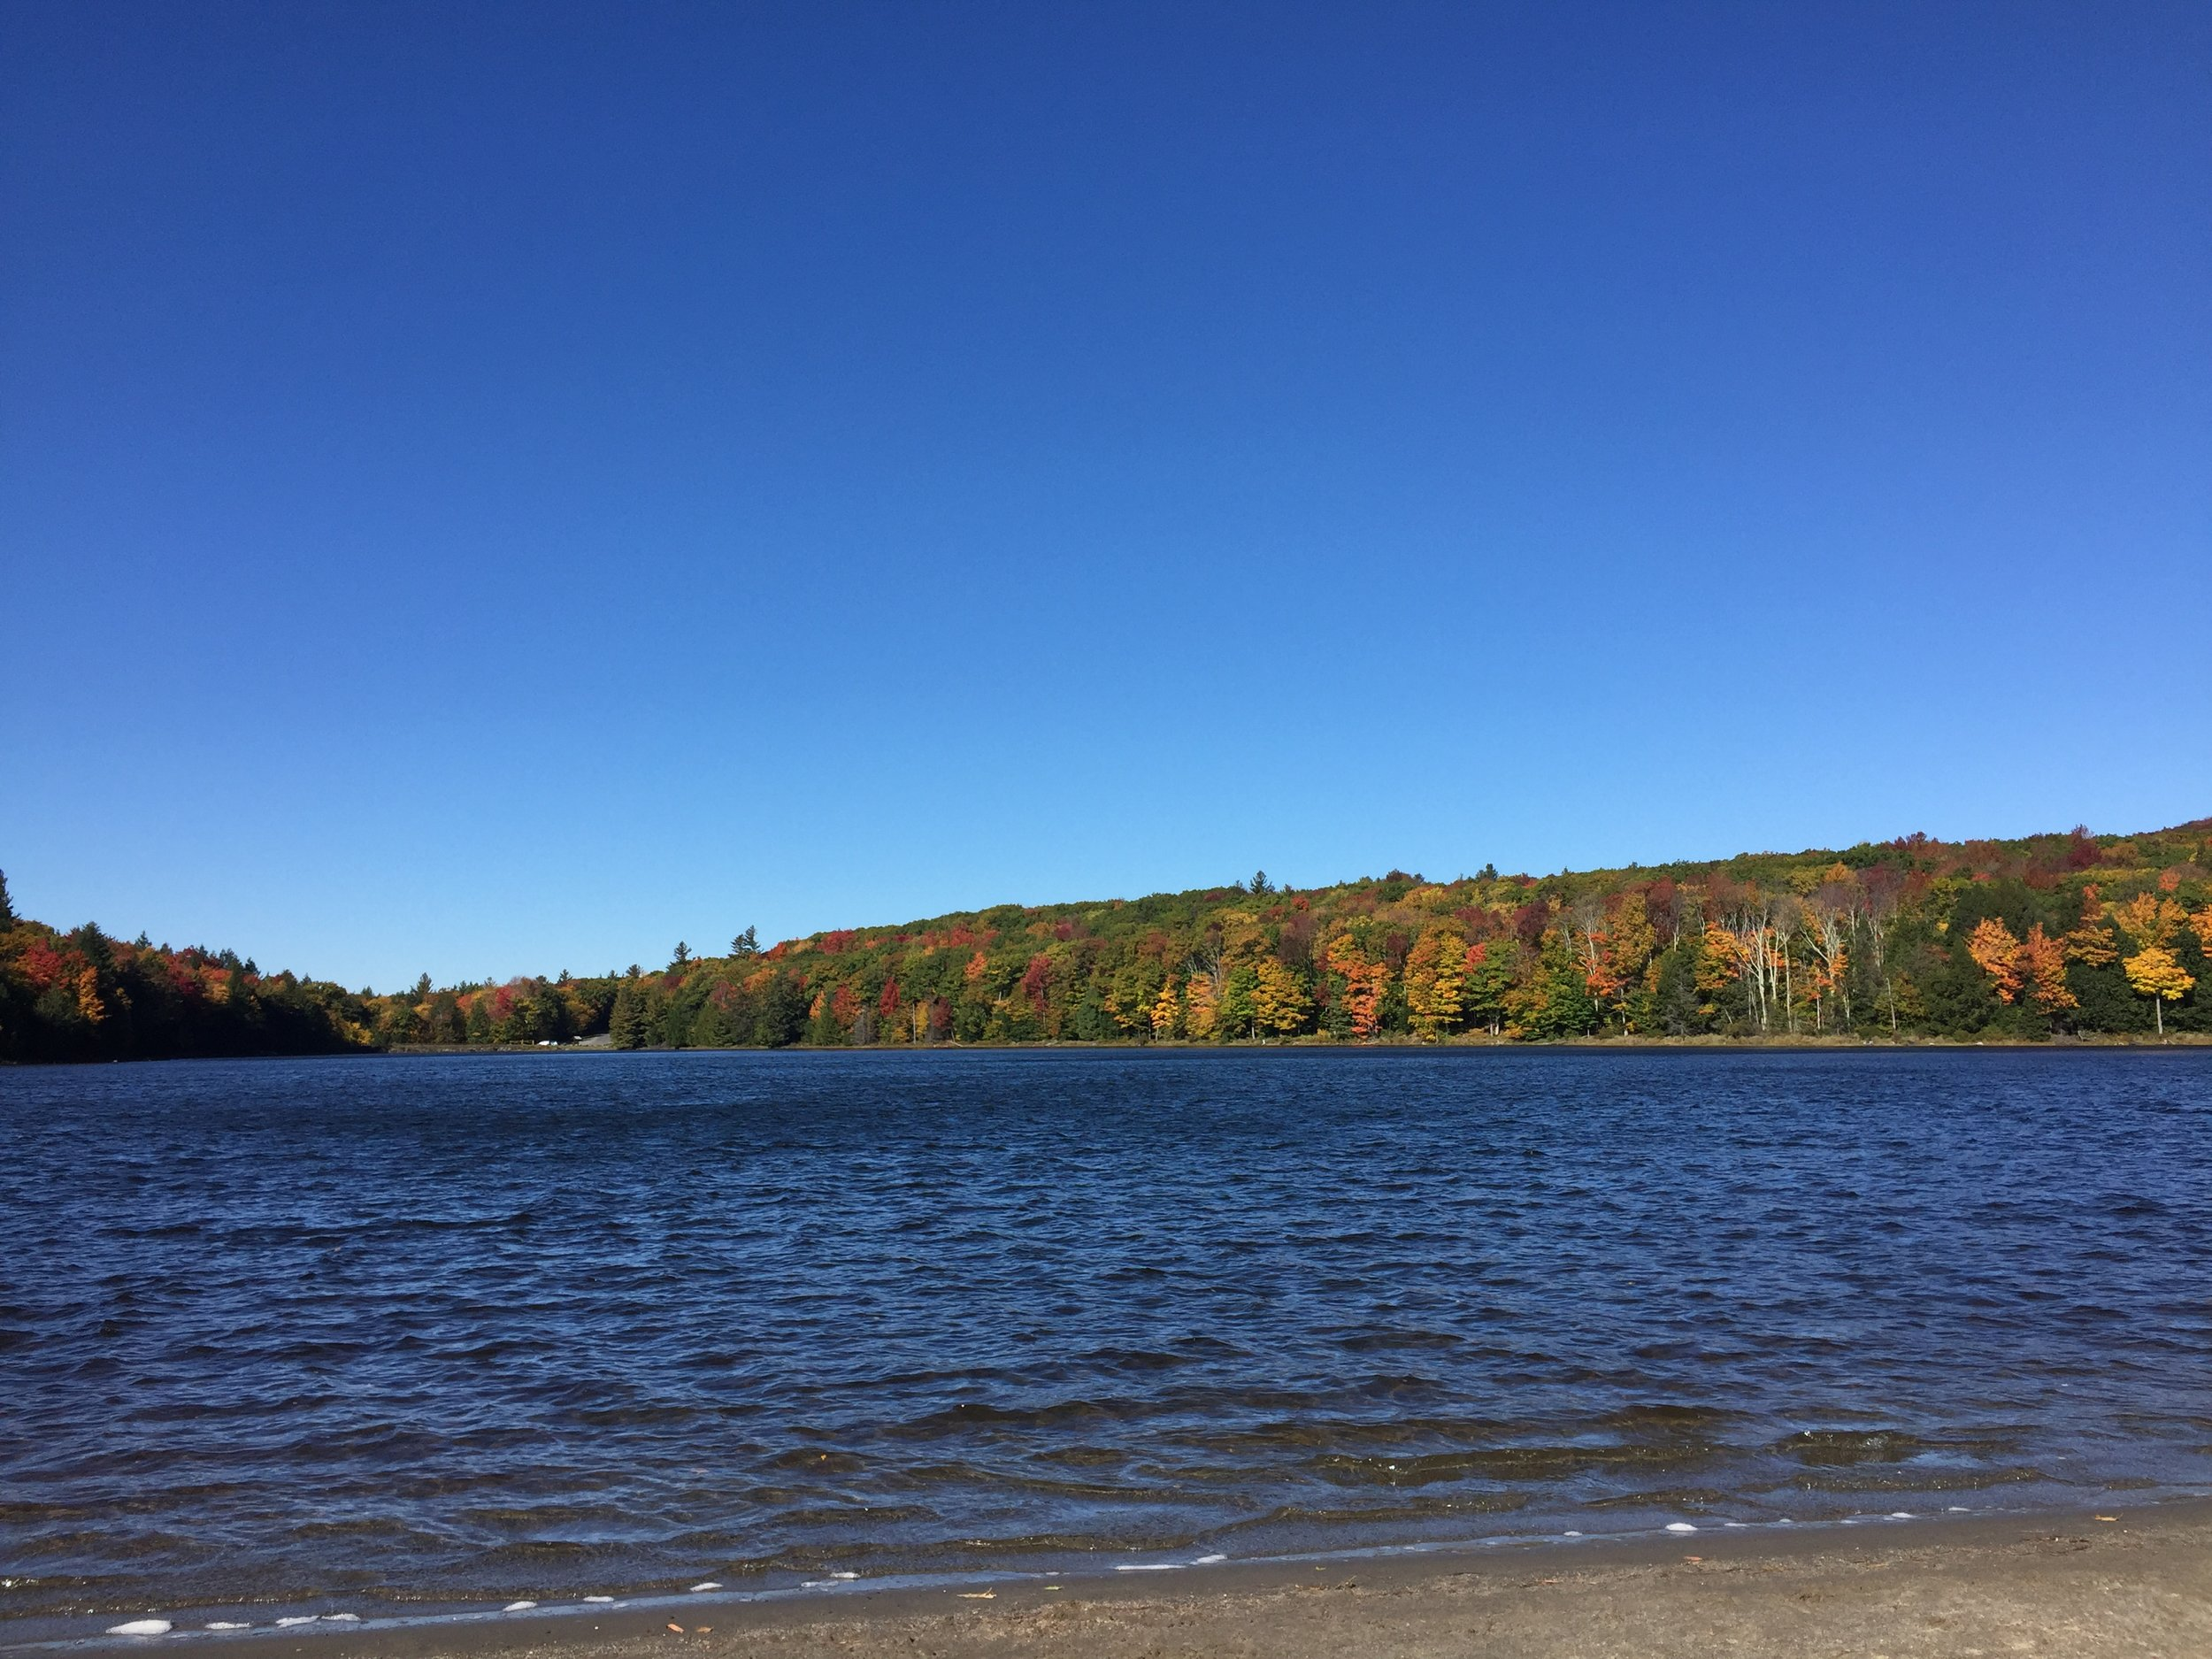 The South Lake under blue skies. The wind was whipping, but the colors were wonderful.